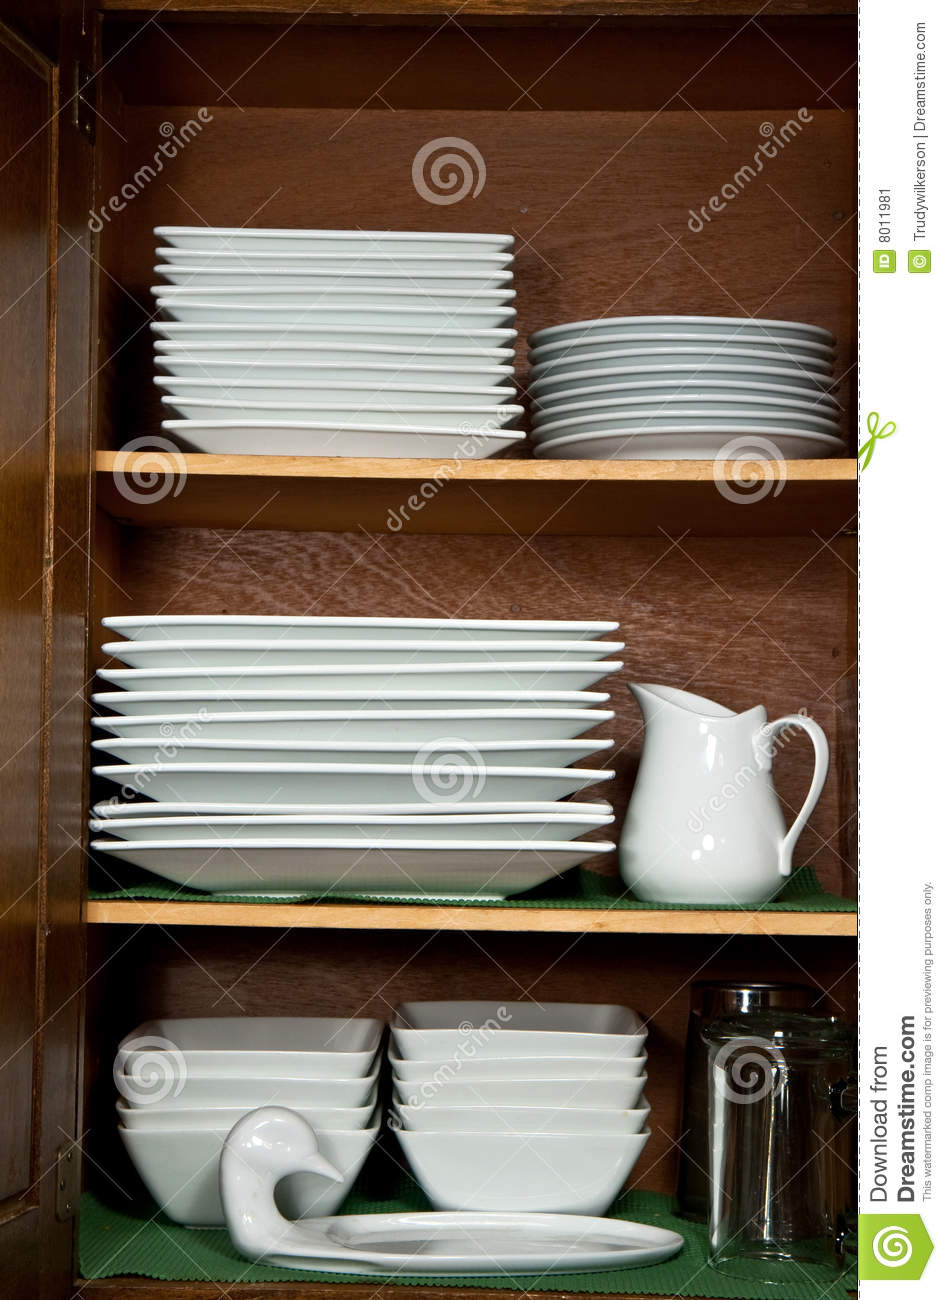 Dishes In Kitchen Cabinet Stock Image Image 8011981